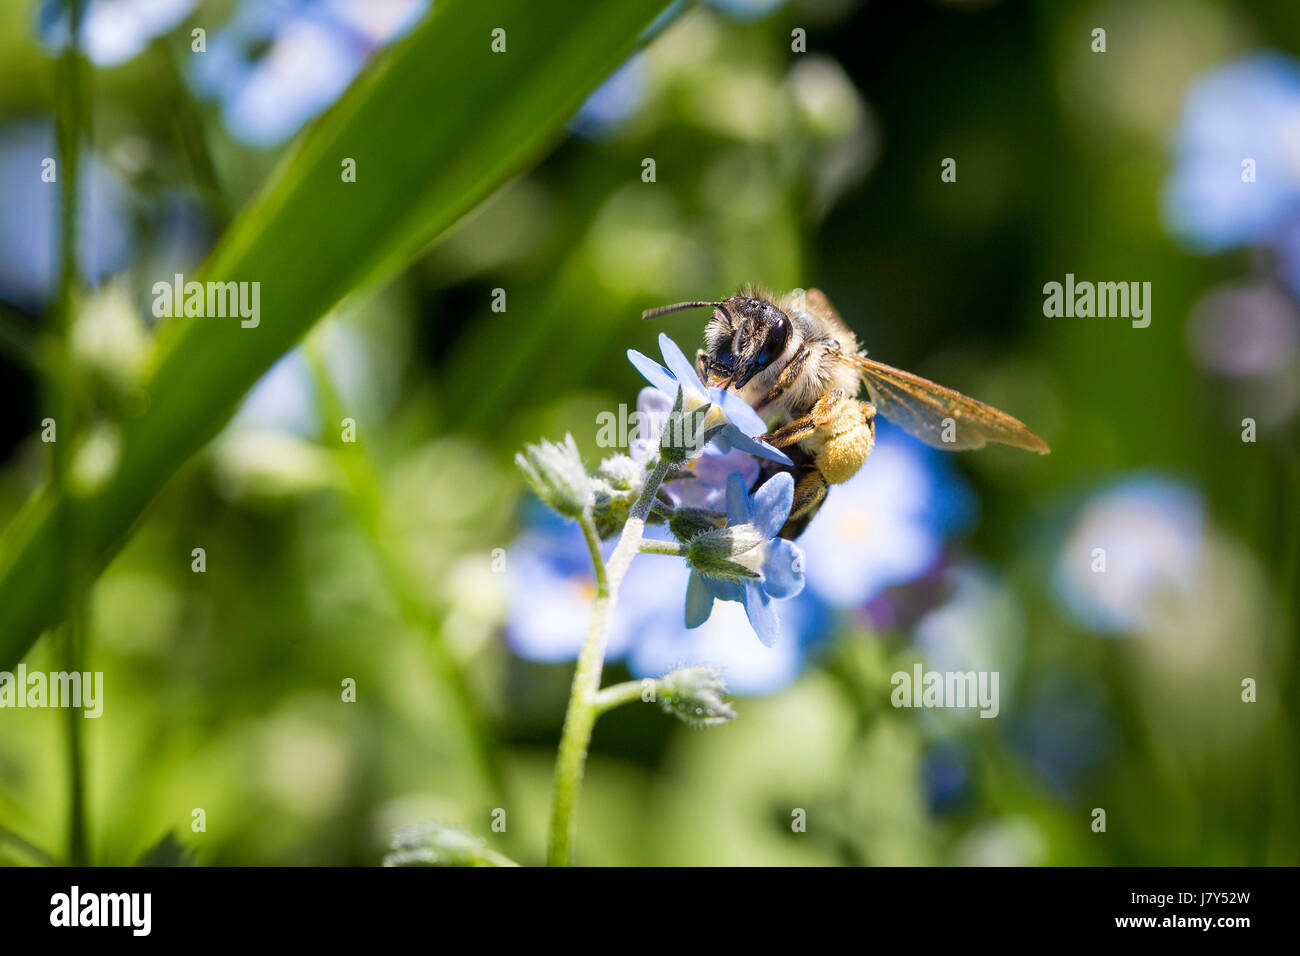 Close up of a bee pollinating a flower. - Stock Image